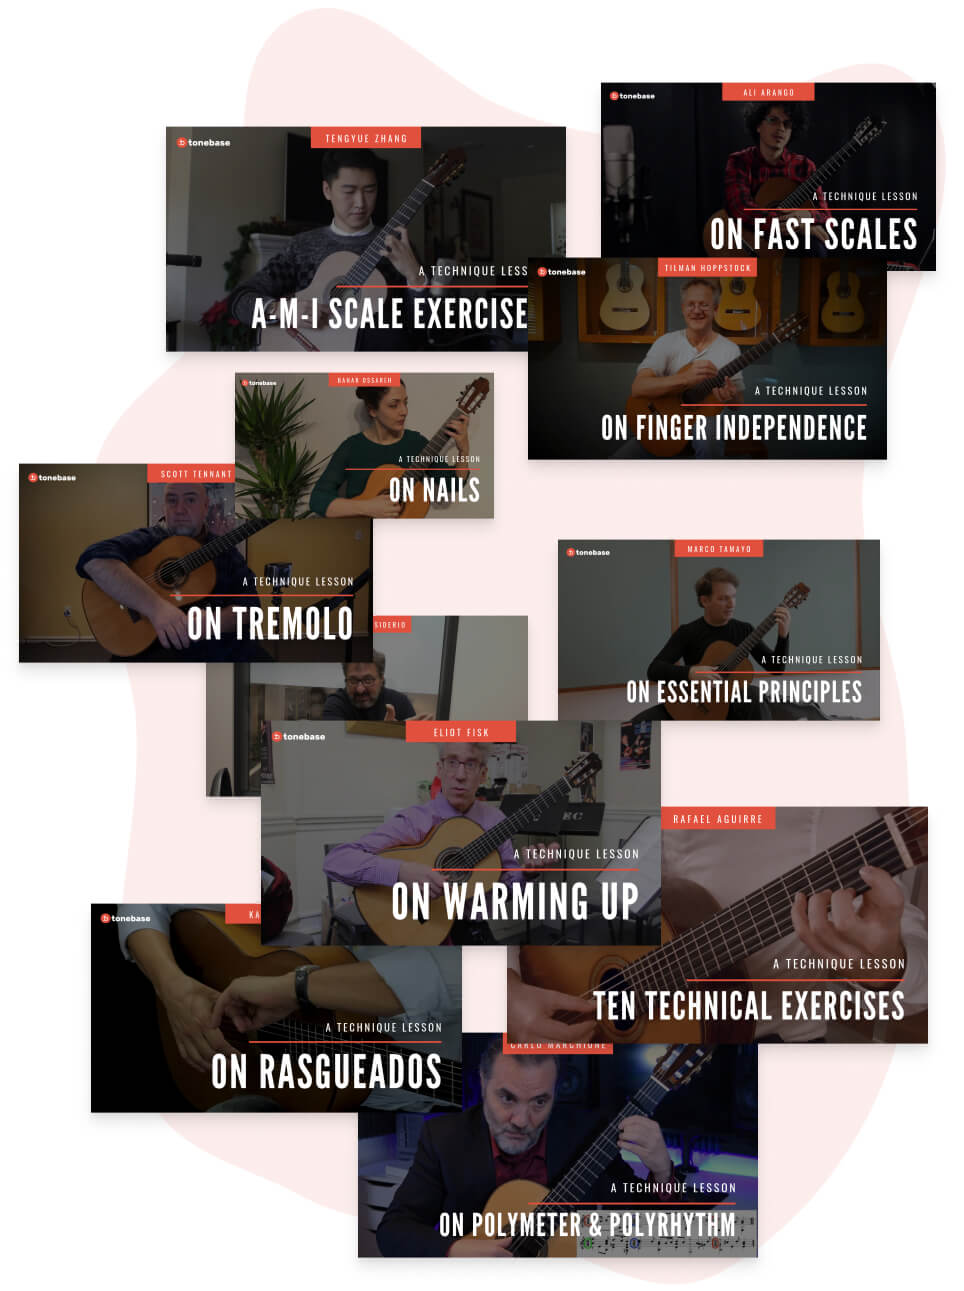 Technique lessons on tonebase | Learn from the world's best guitarists